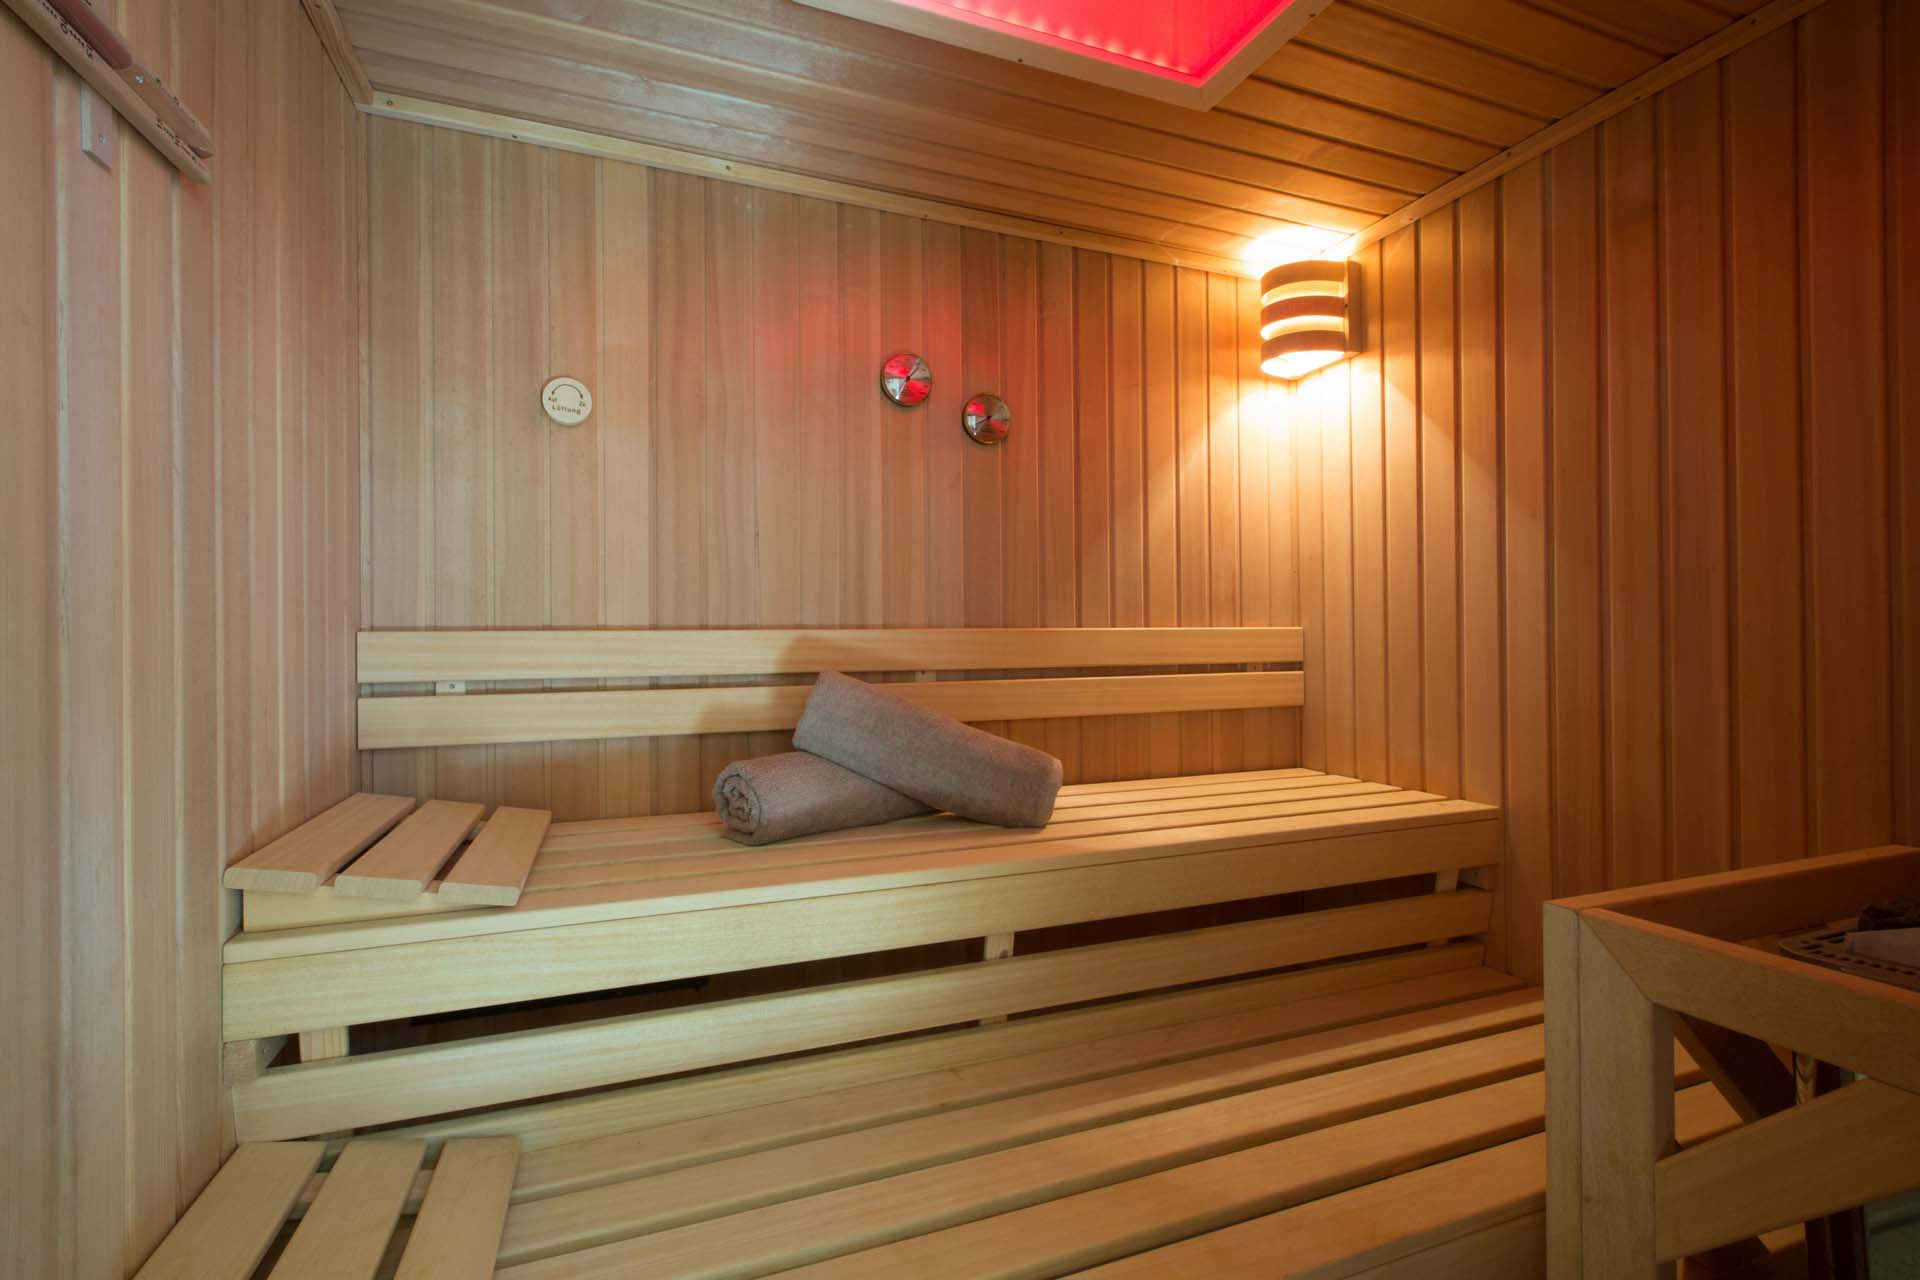 Scandinavian sauna for4-6 people with color therapy